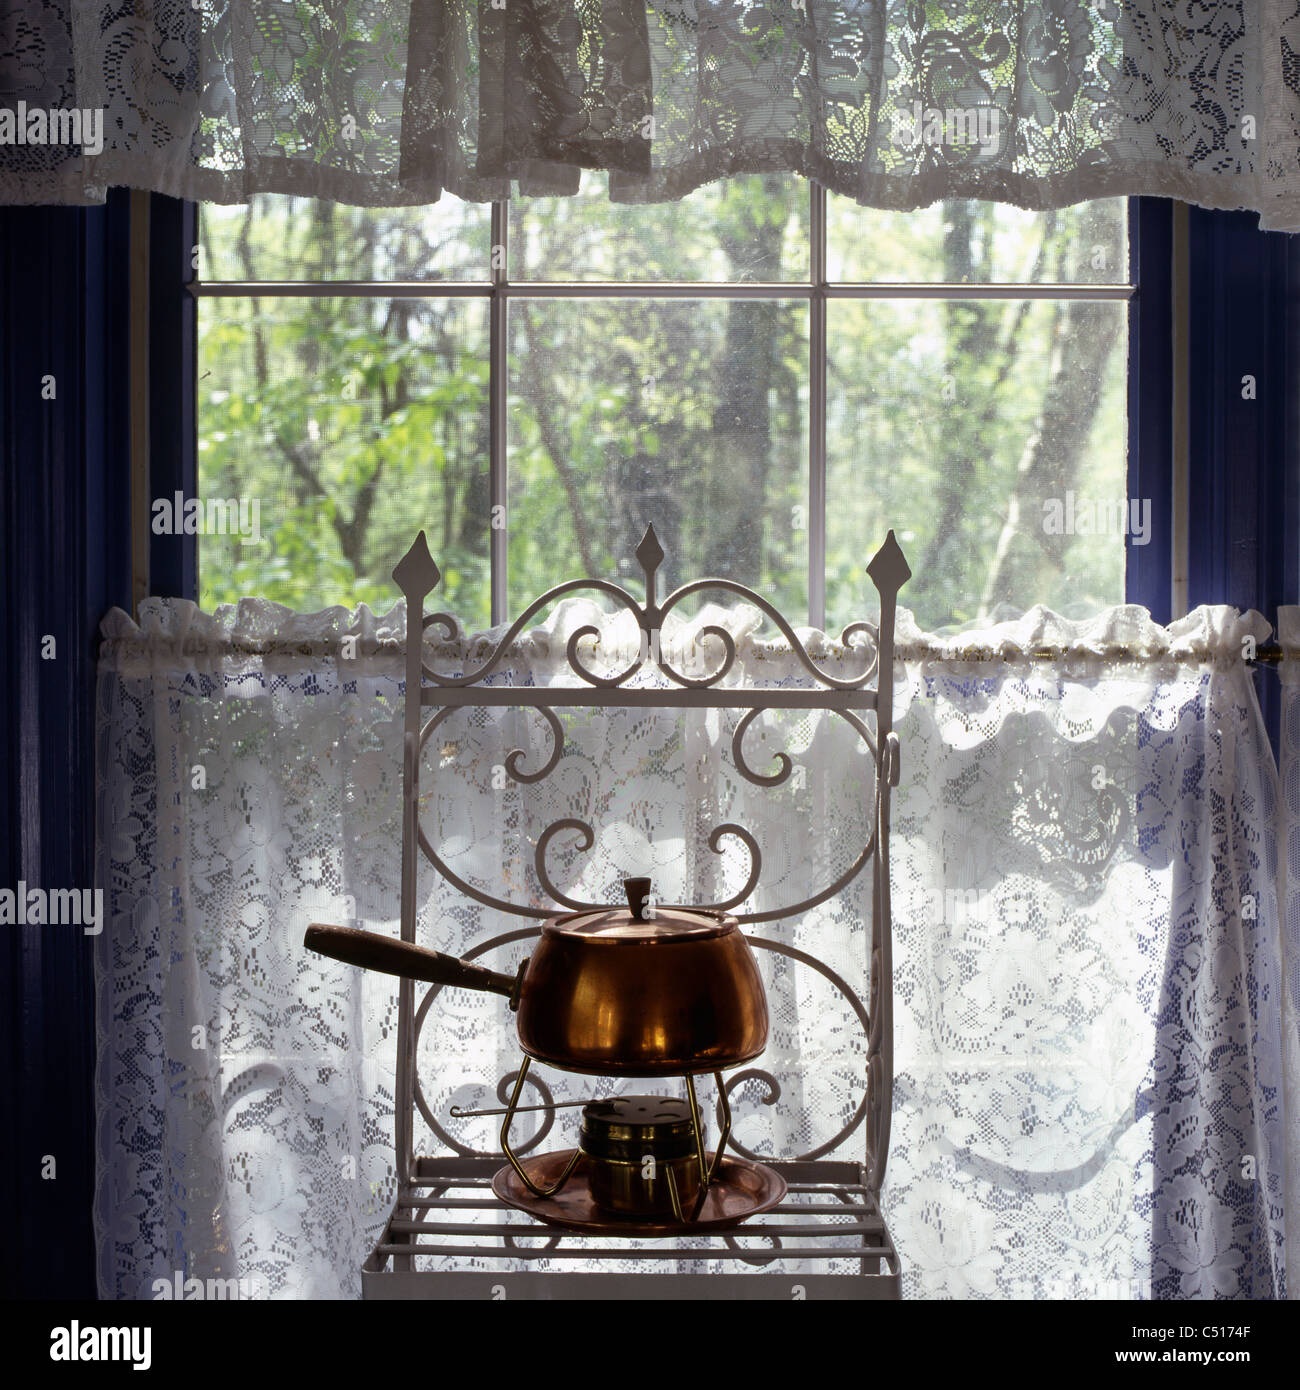 Old-fashioned pan on shelf in front of window - Stock Image